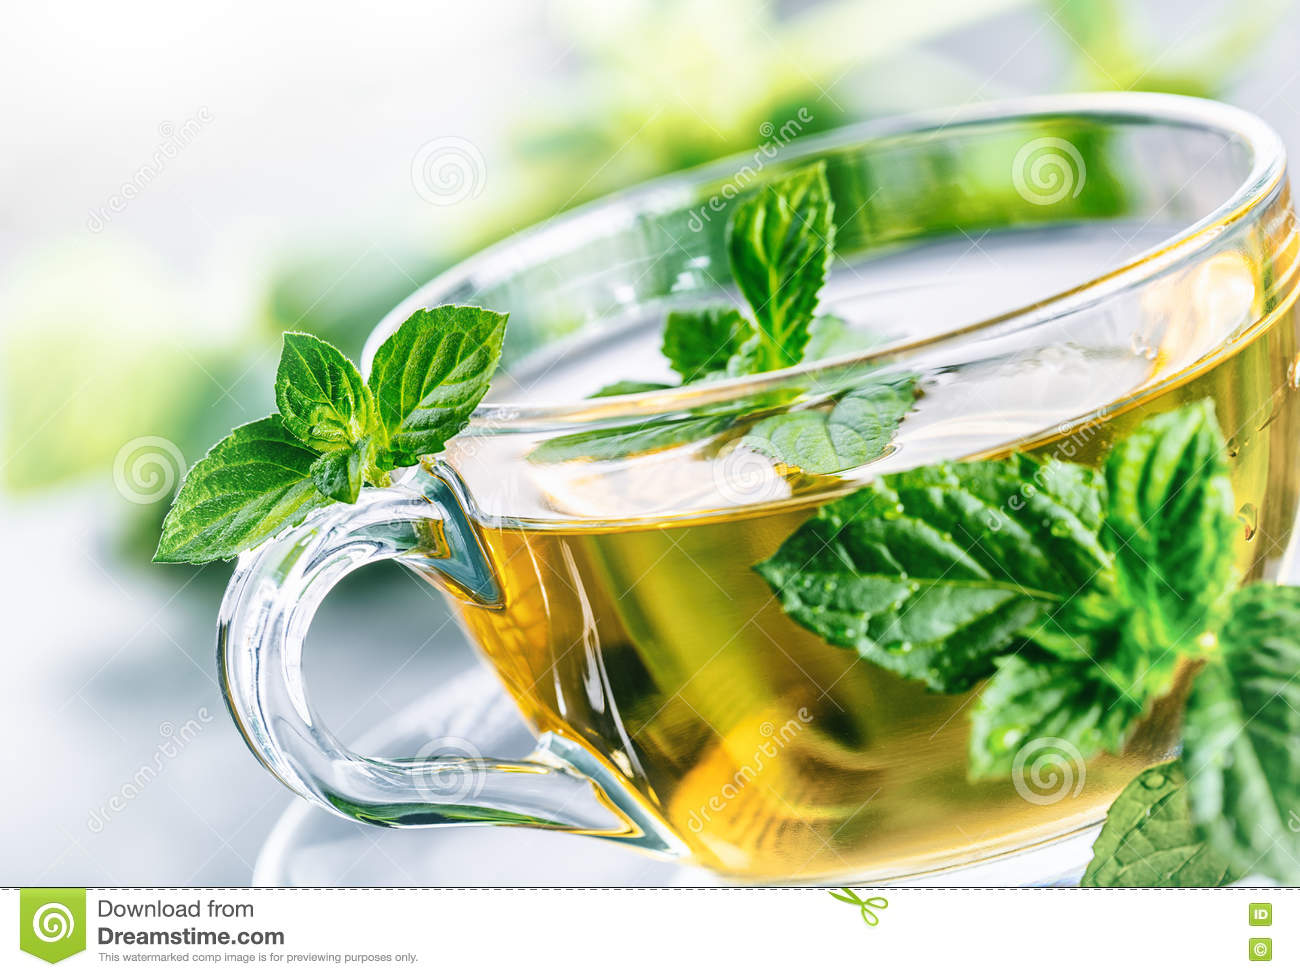 how to use mint leaves in tea